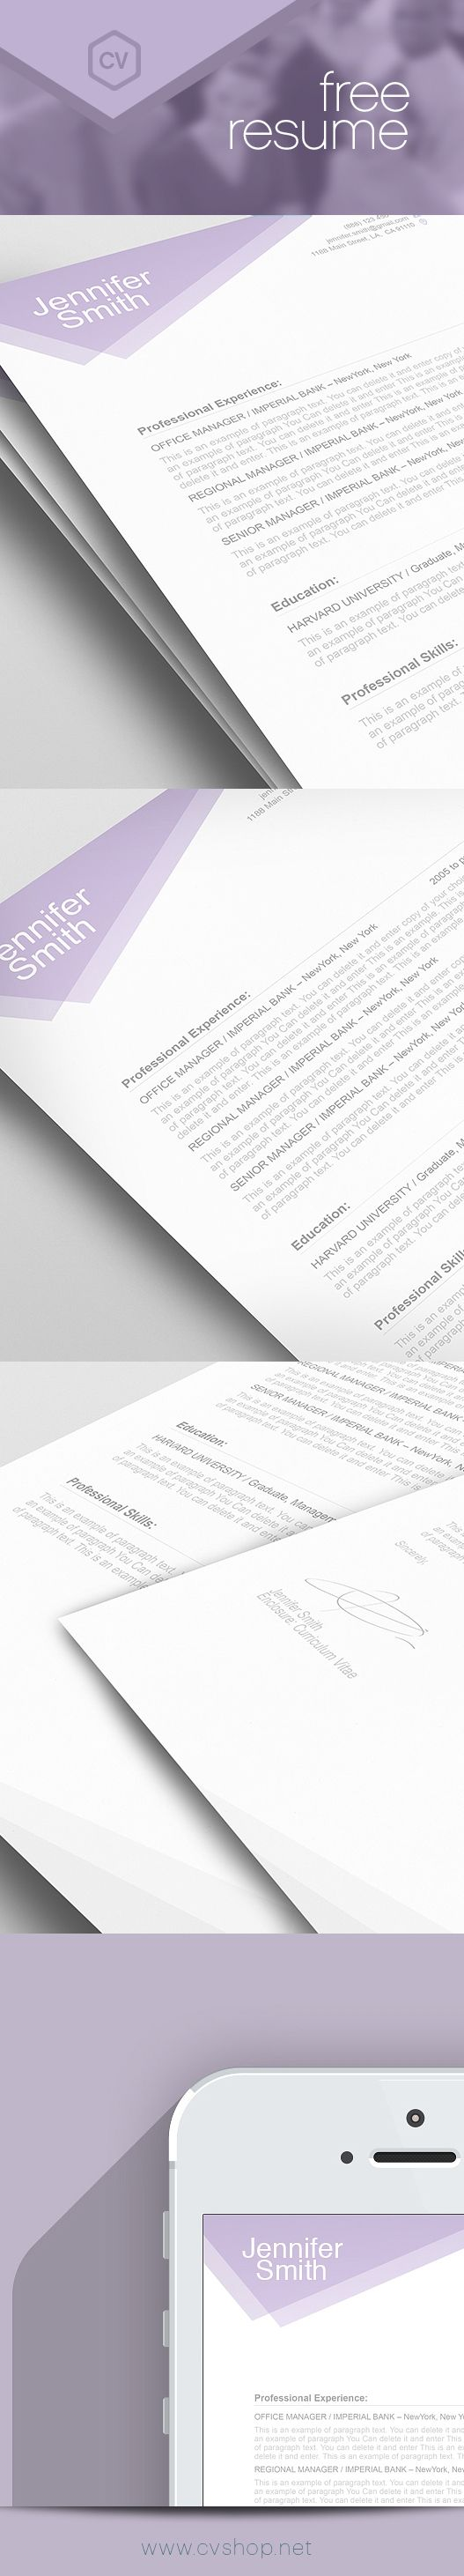 Free Resume Template 100030 14 best FREE